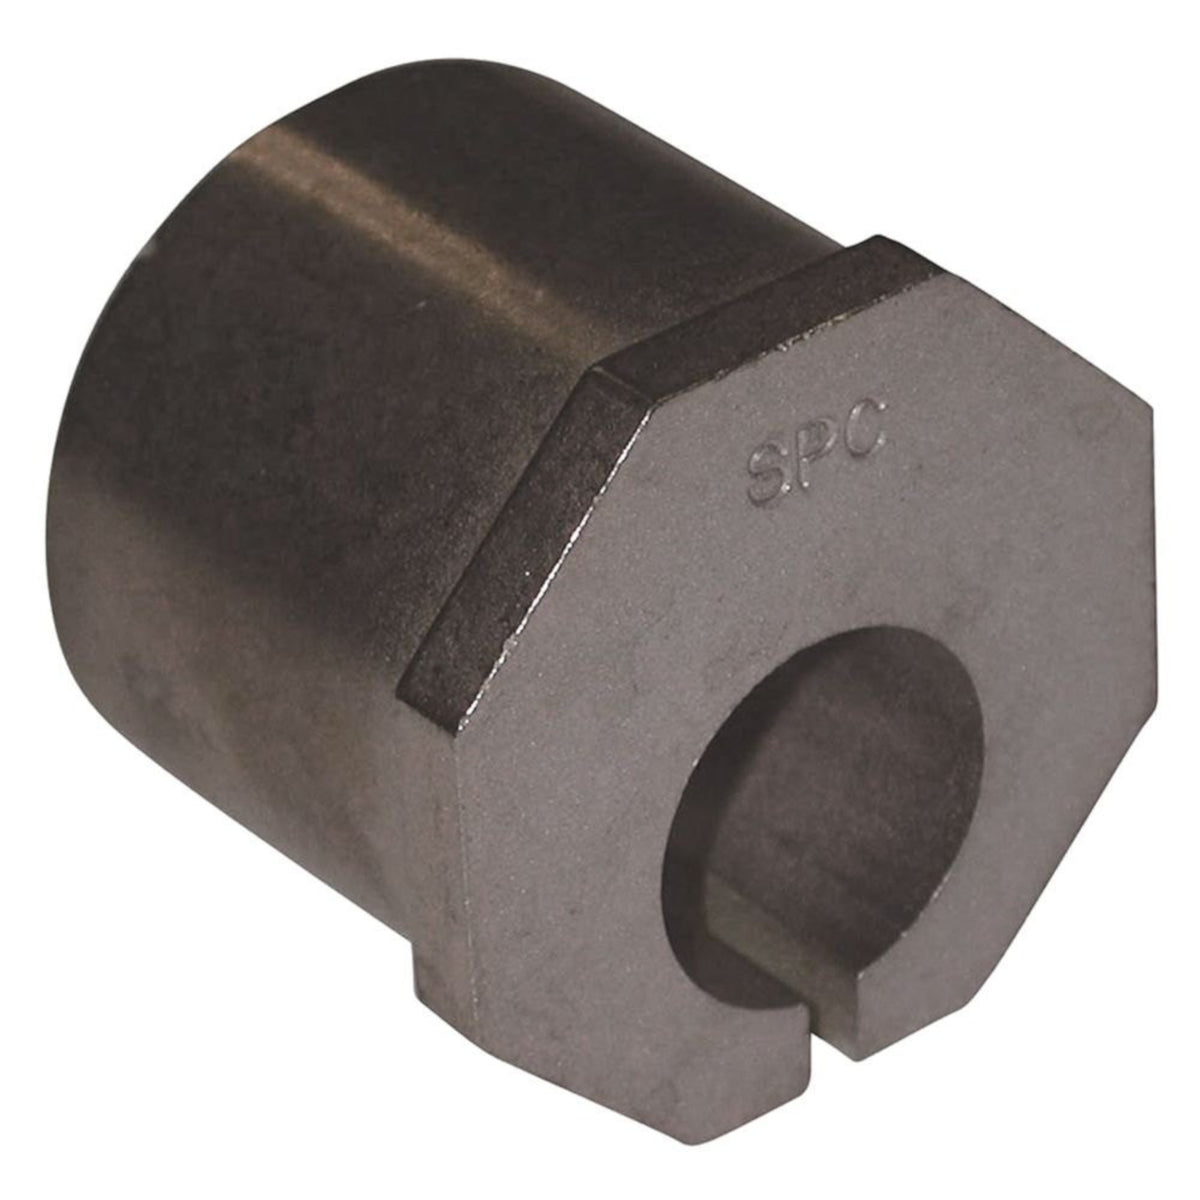 Specialty 23223 Ford Sleeve (3/4°)